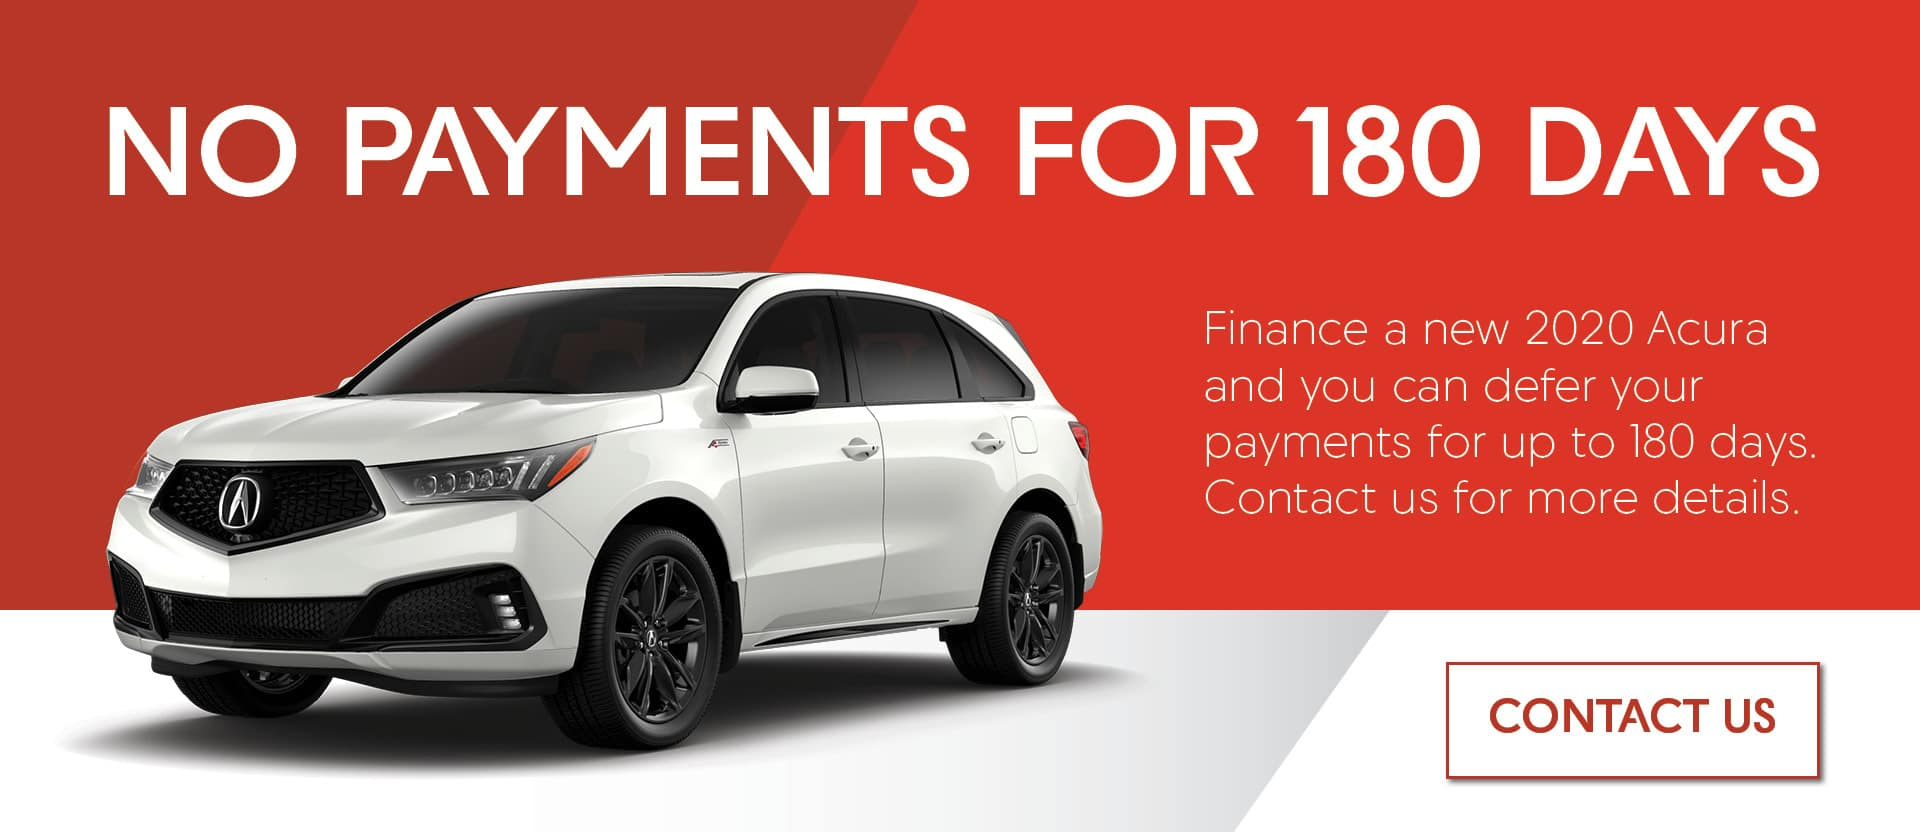 no payments 180 days